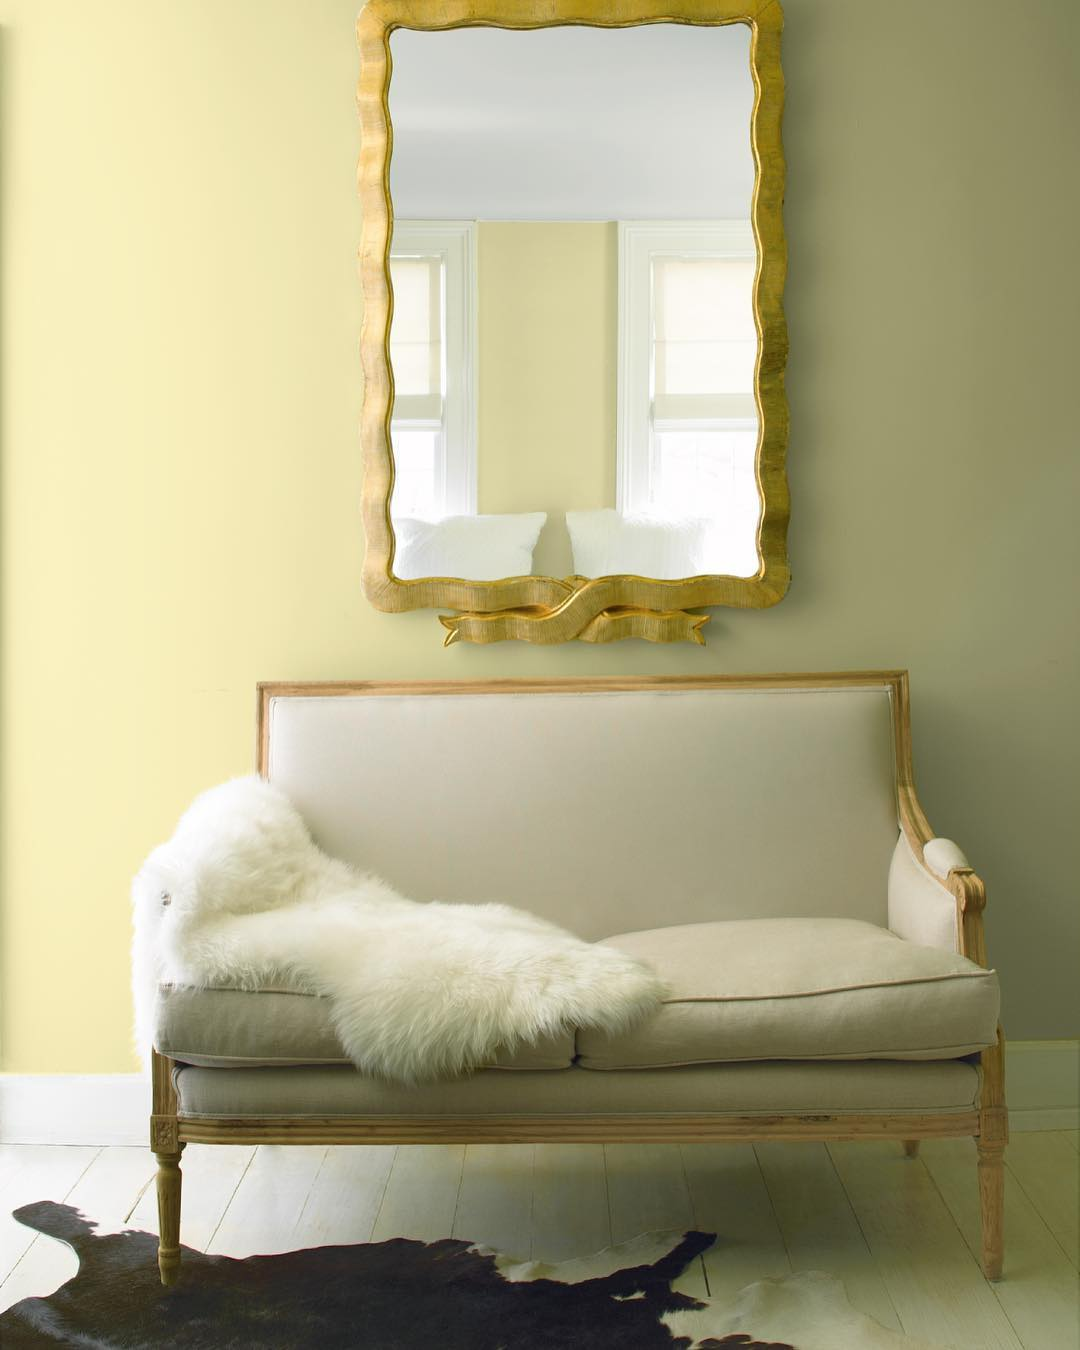 Liverpool Bedroom Wallpaper Blue And Yellow Bedroom Color Schemes House Interior Bedroom For Kids Bedroom Decor Pictures Ideas: Benjamin Moore Beacon Hill Damask